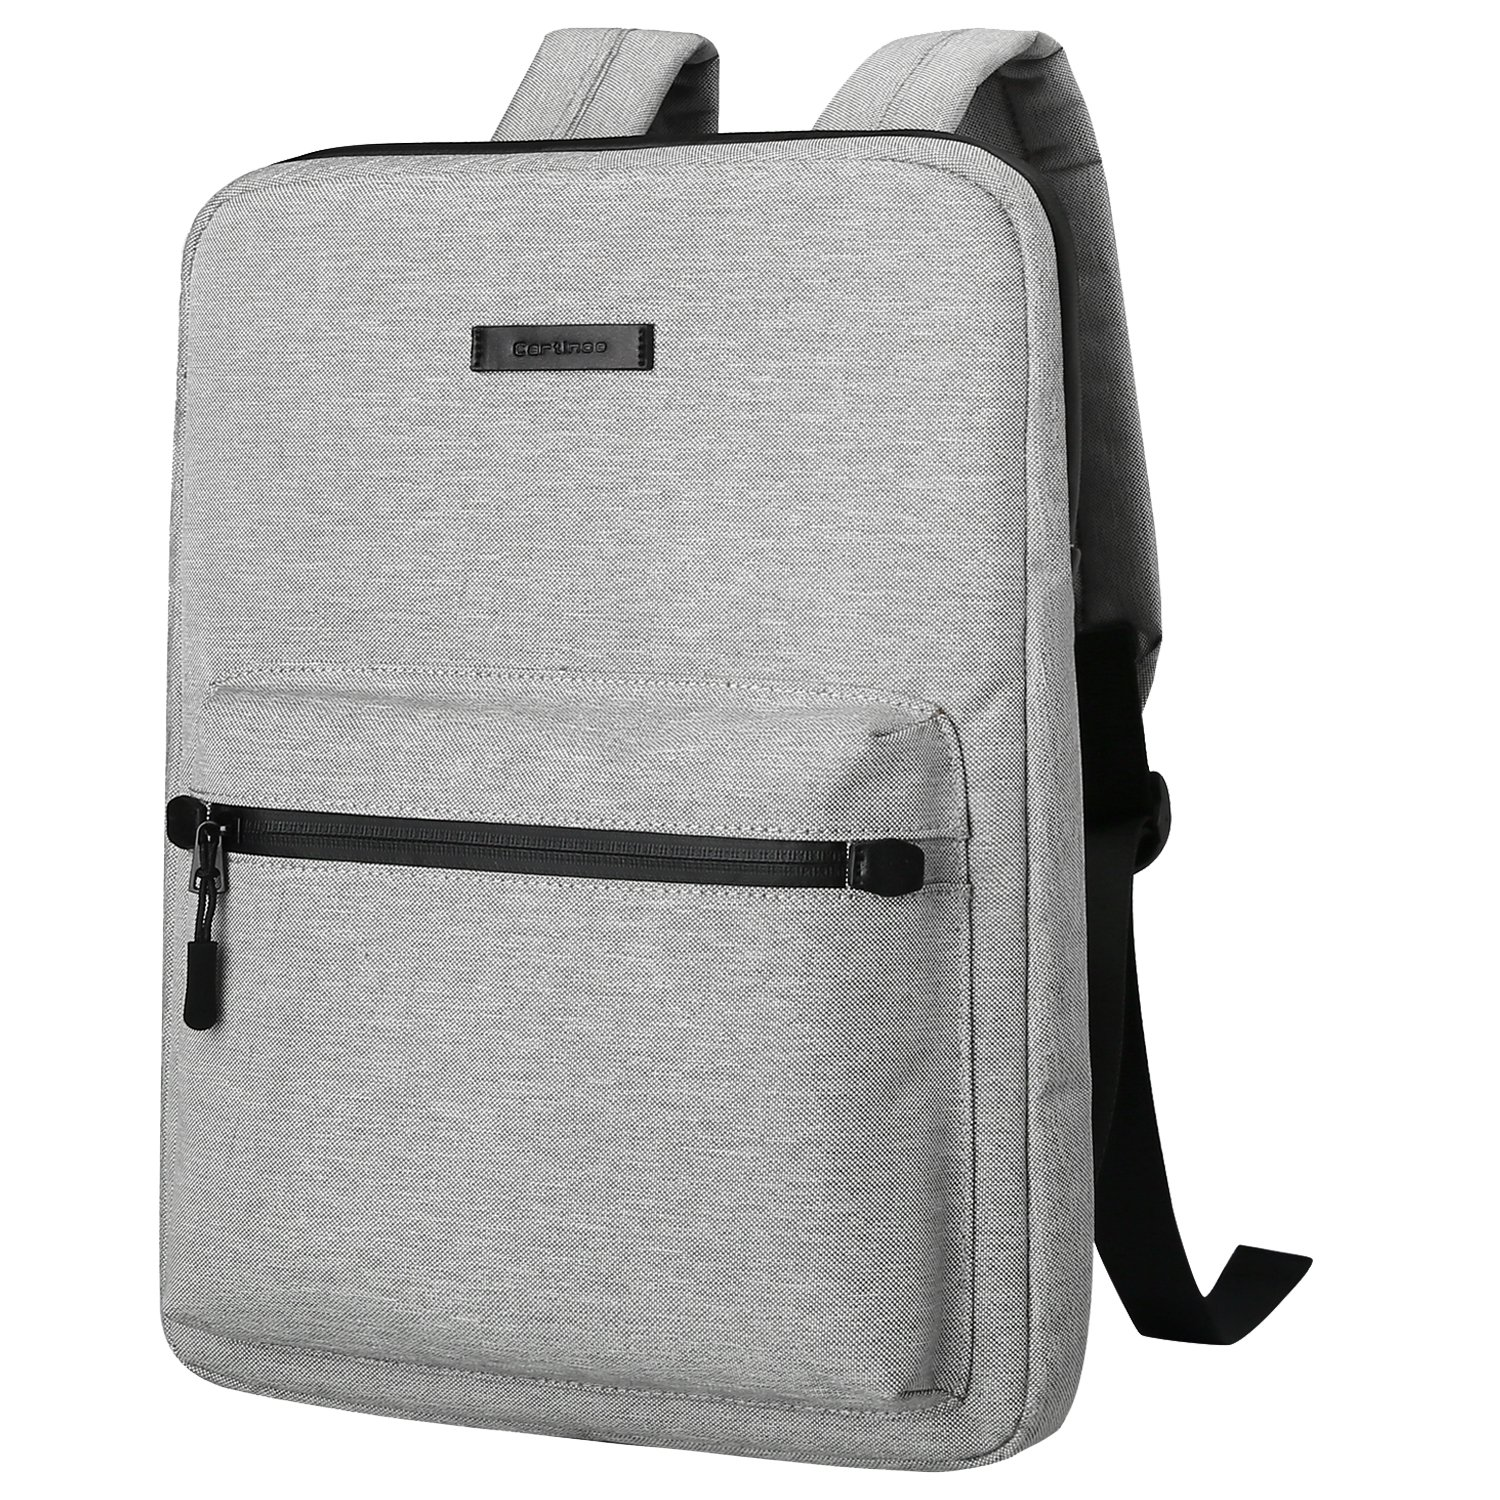 free shipping College Backpack, Waterproof Laptop Backpack